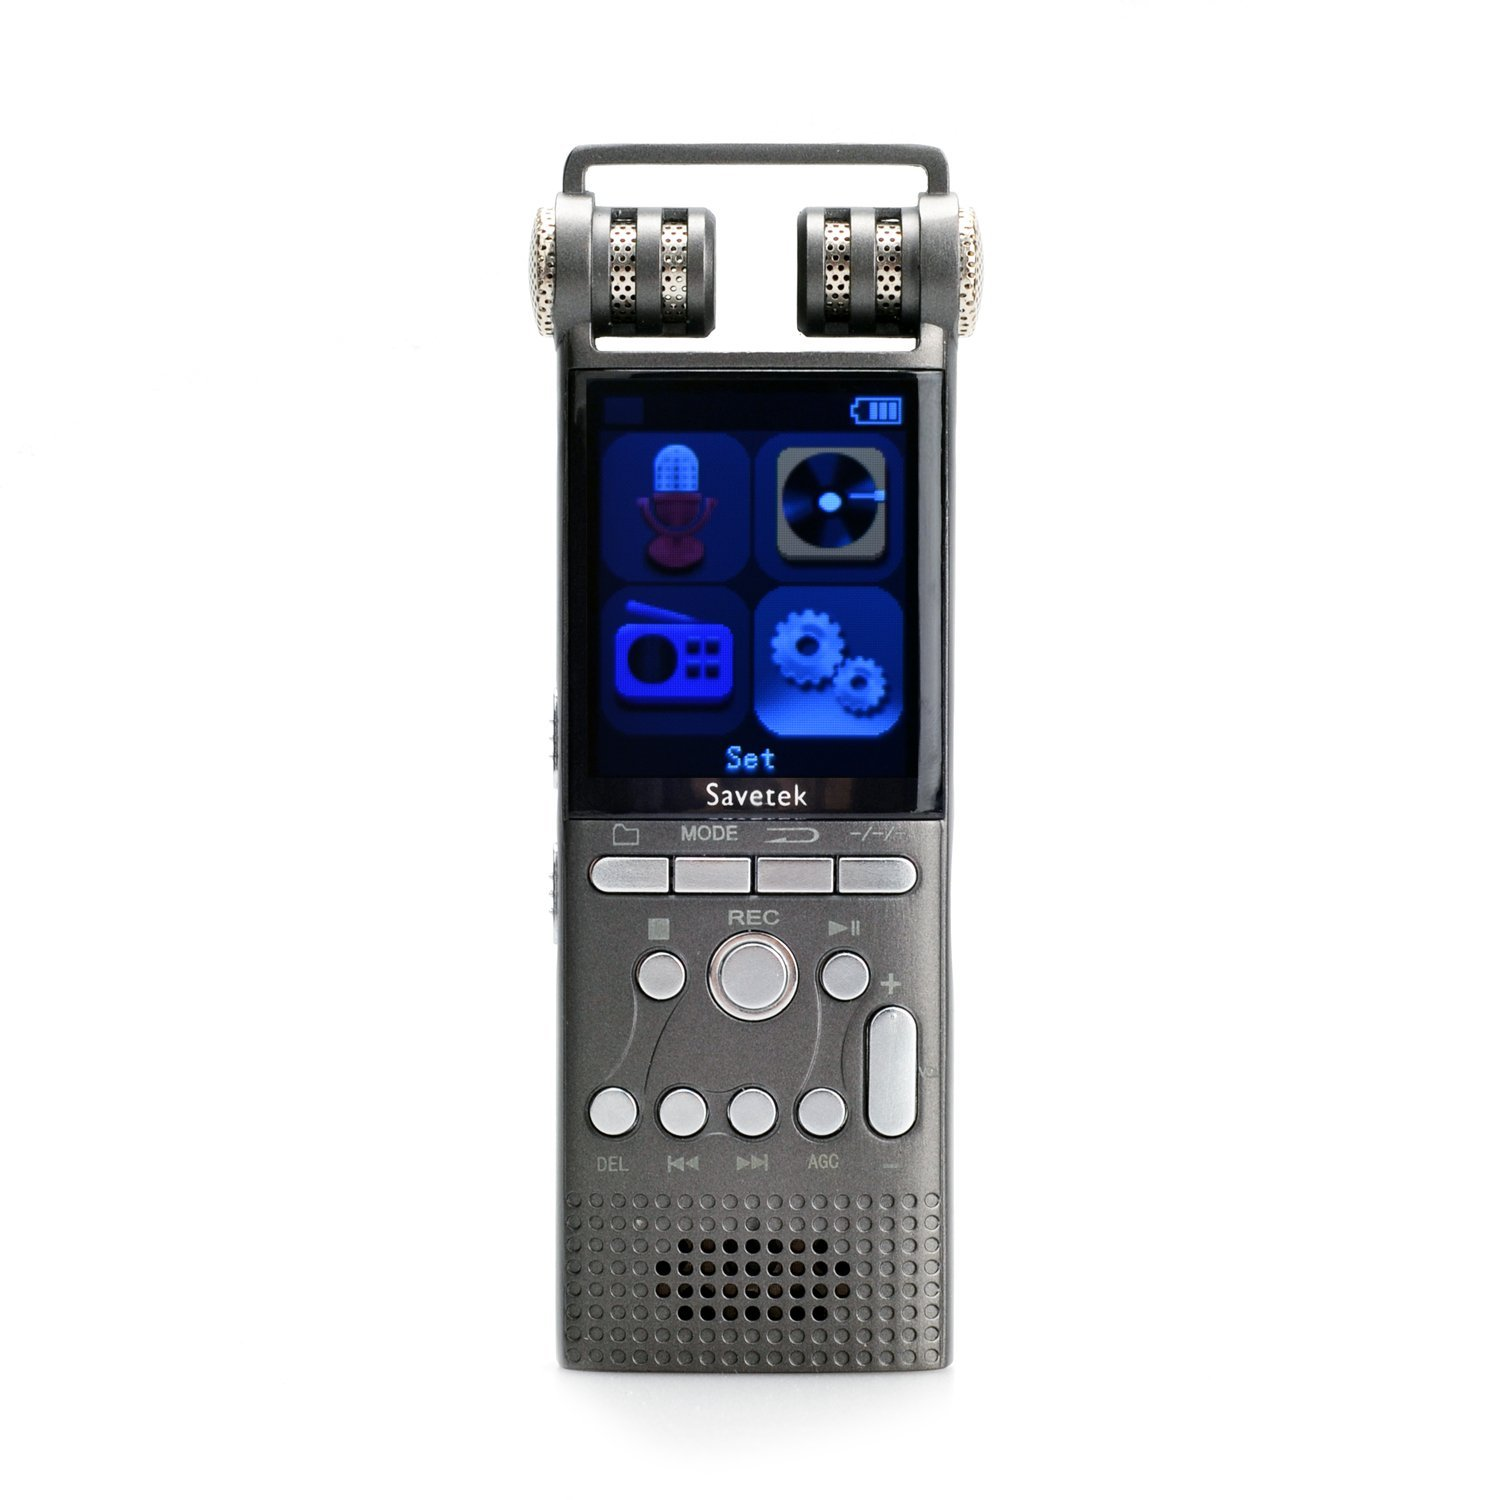 Professional Voice Activated Digital Voice Recorder 16GB USB Spy Pen Non-Stop 100hrs Recroding PCM 1536Kbps,Support TF-Card, Cellphone Recorder and Dictaphone Recorder Mp3 Player